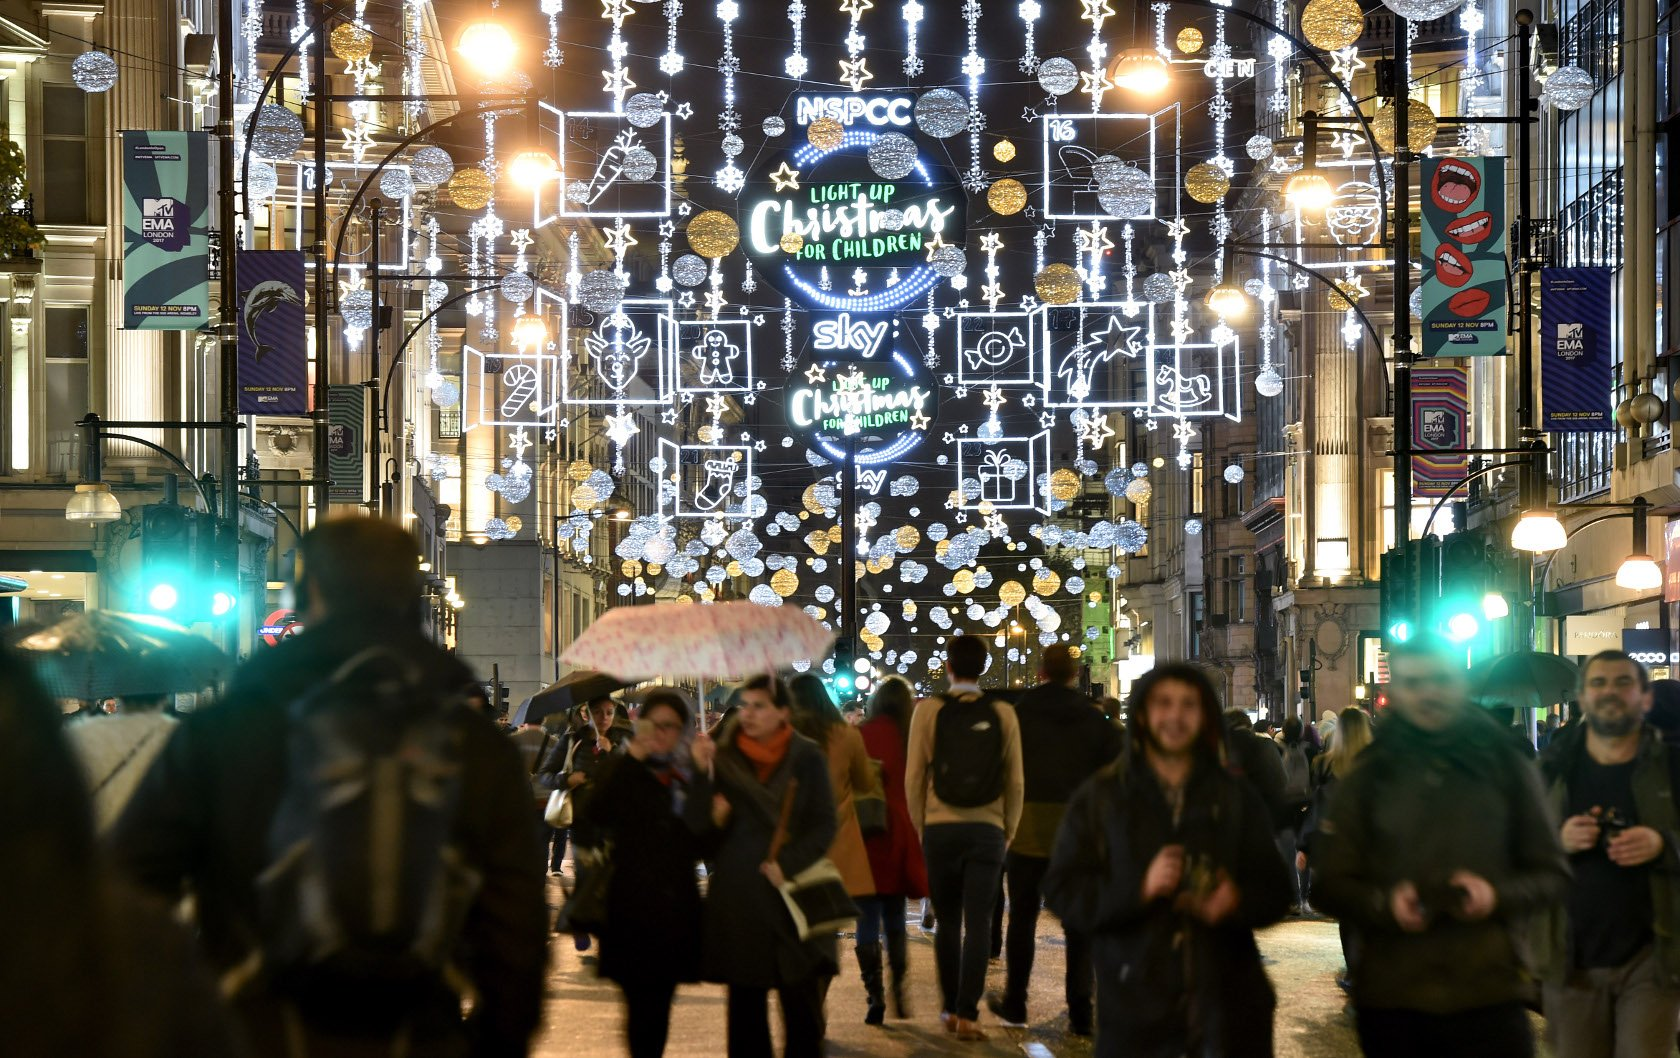 10 Magical Christmas Light Displays To See In London